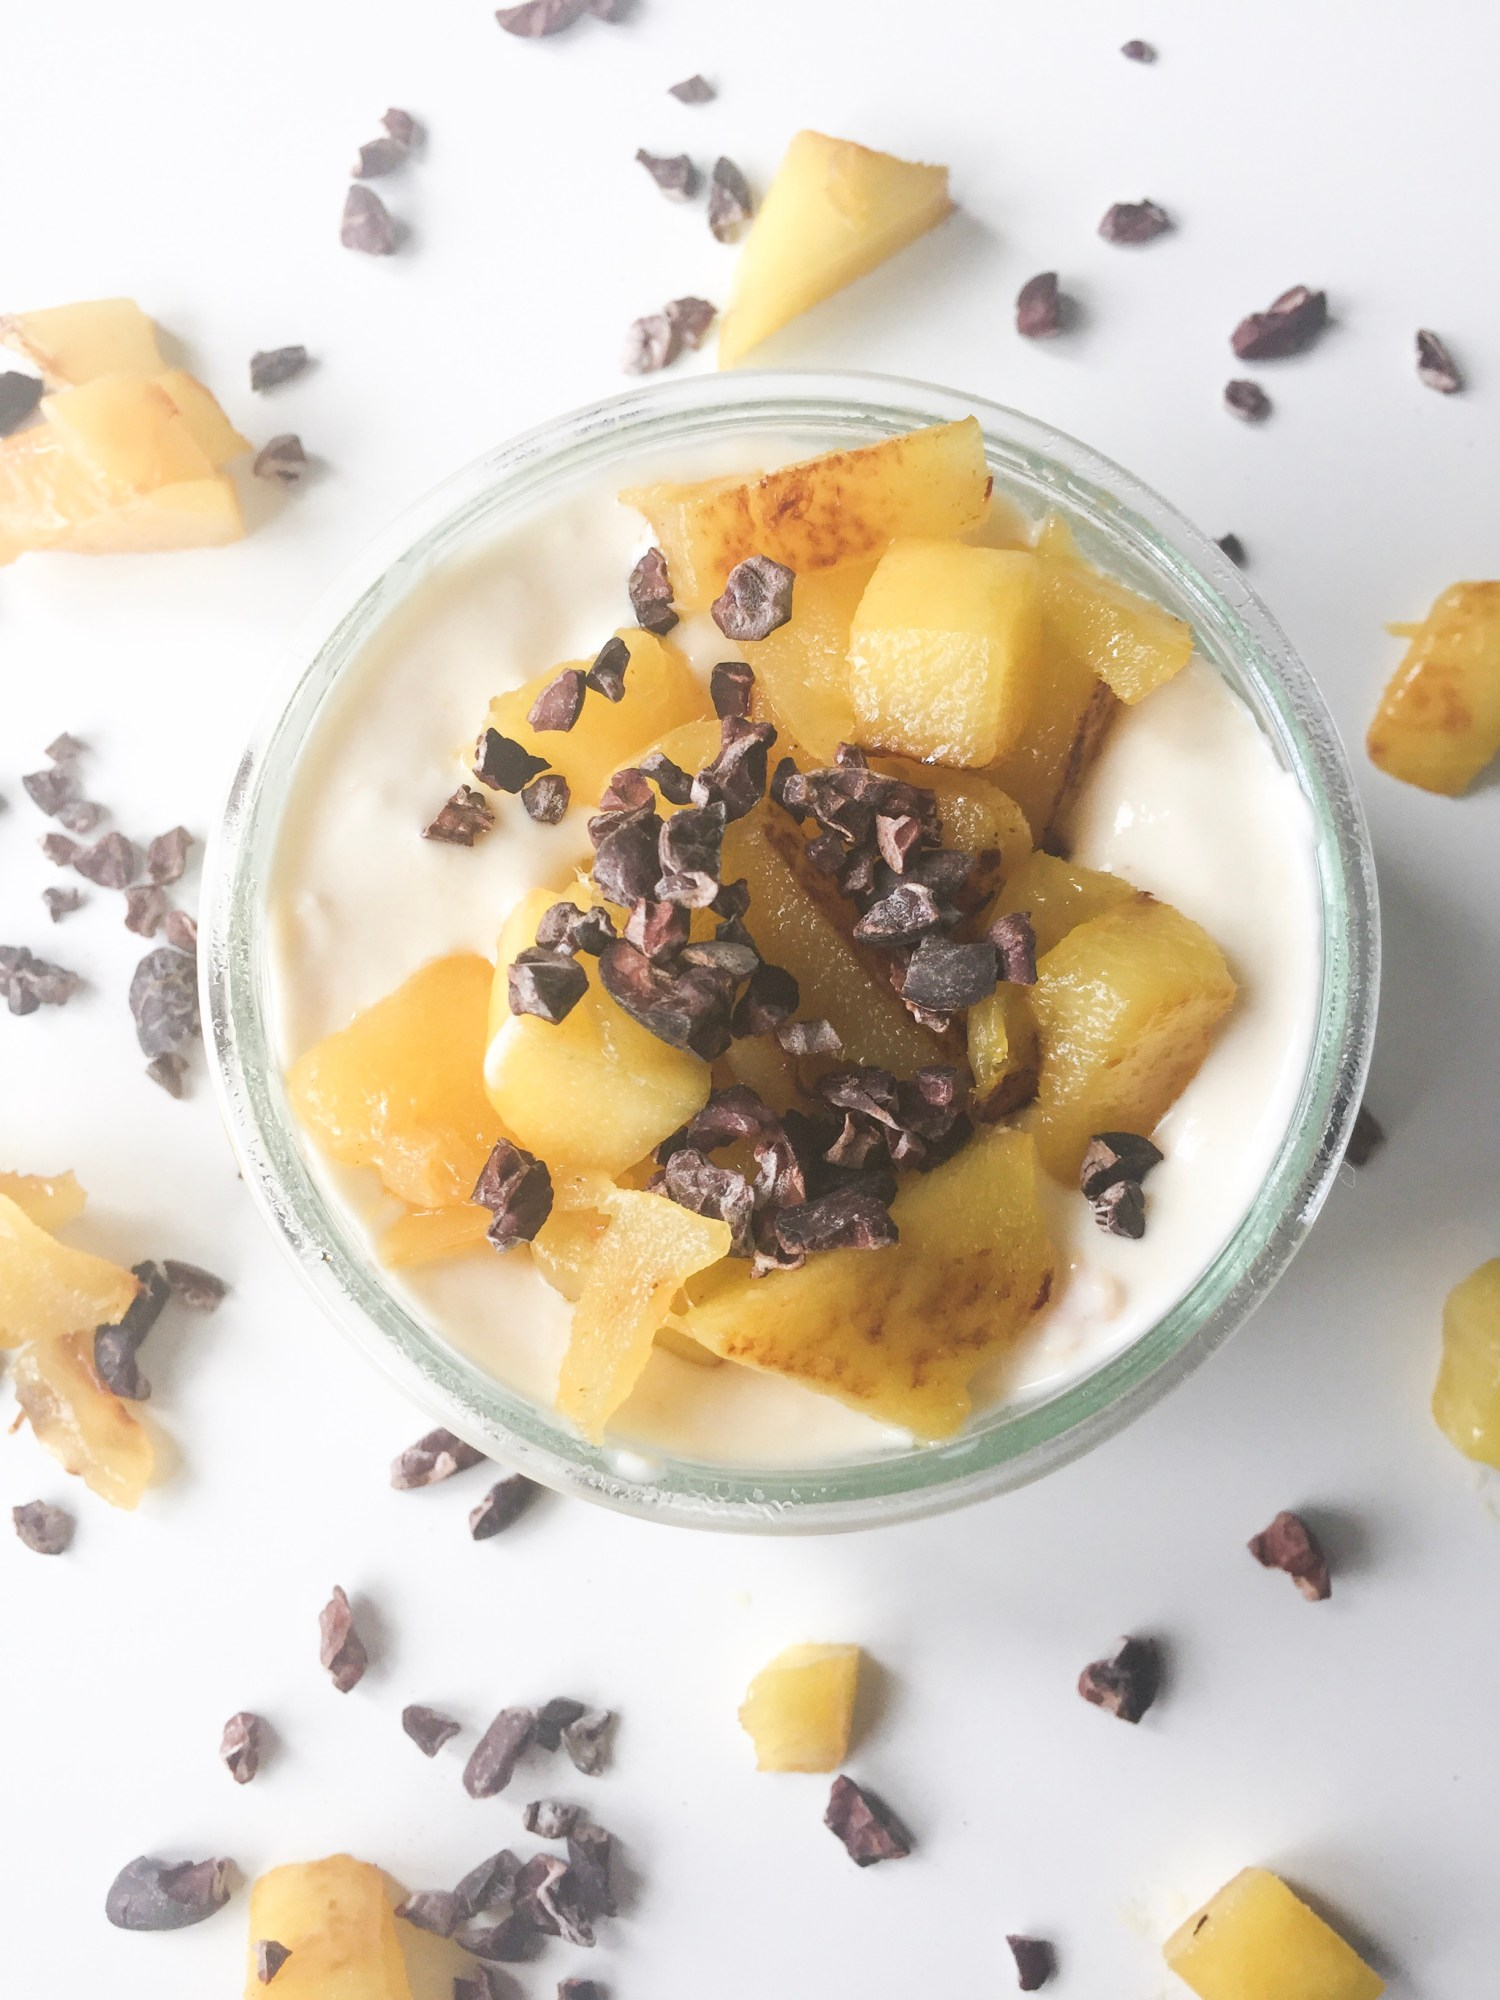 Strained Peach & Mango Yogurt